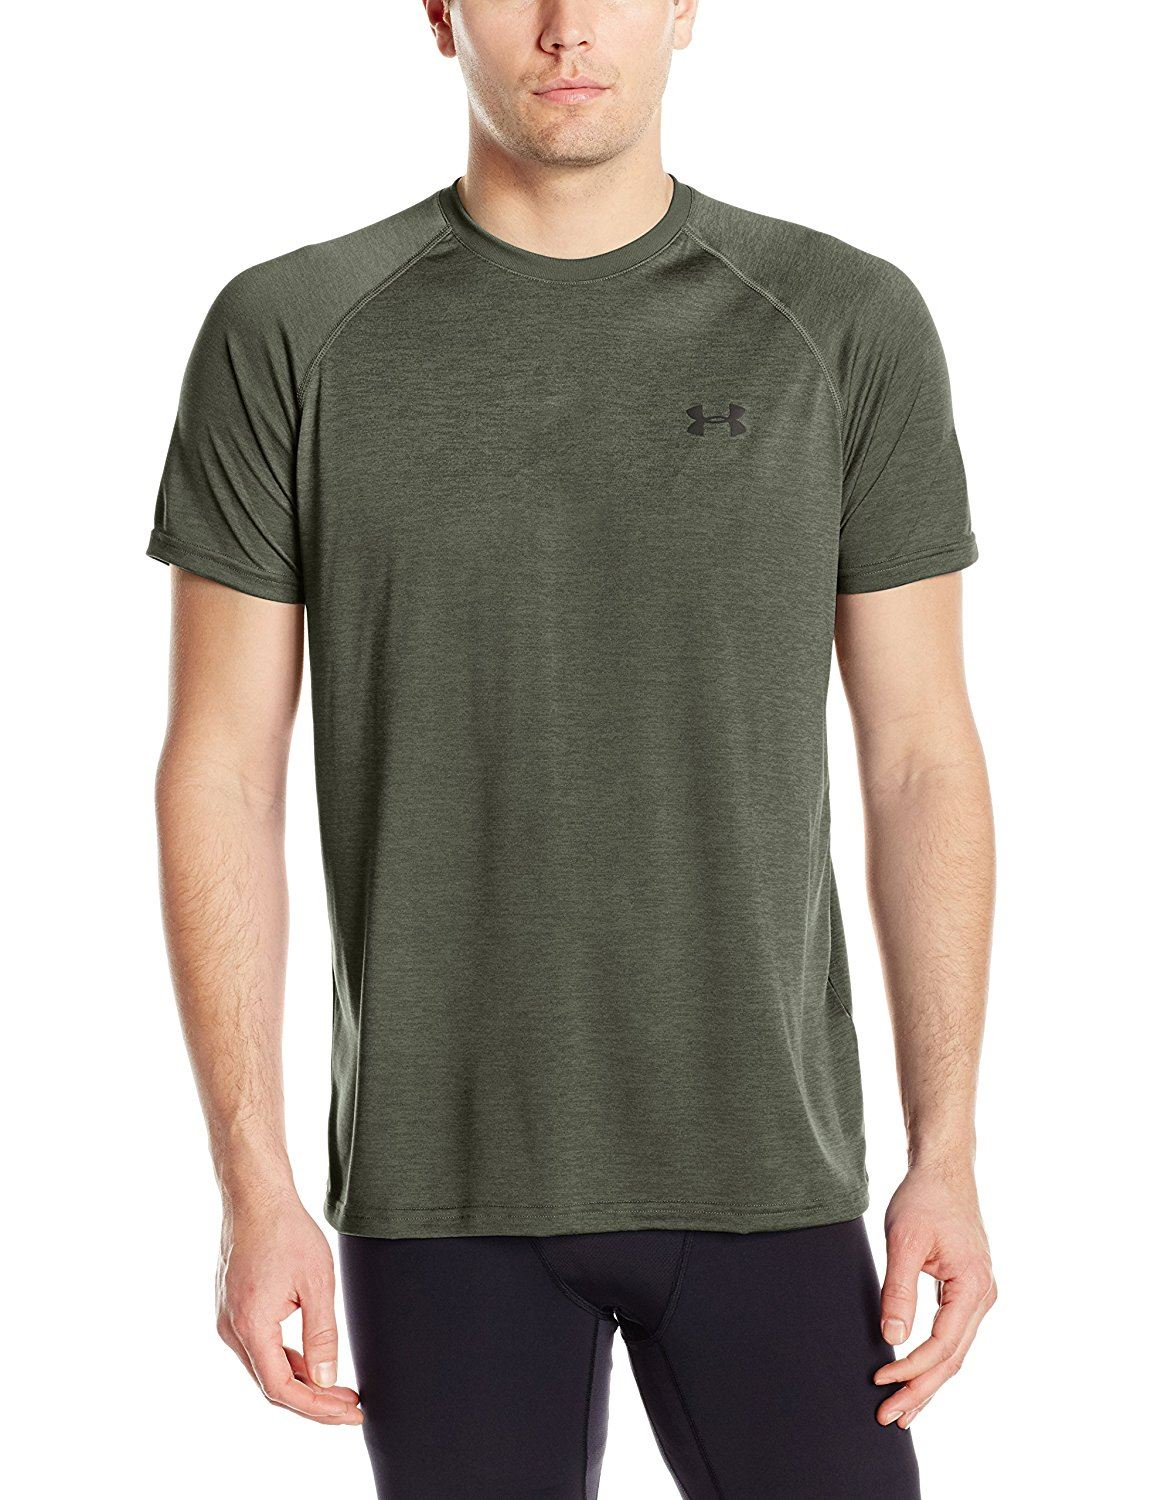 Under Armour Men 39 S Tech Short Sleeve T Shirt Many Colors